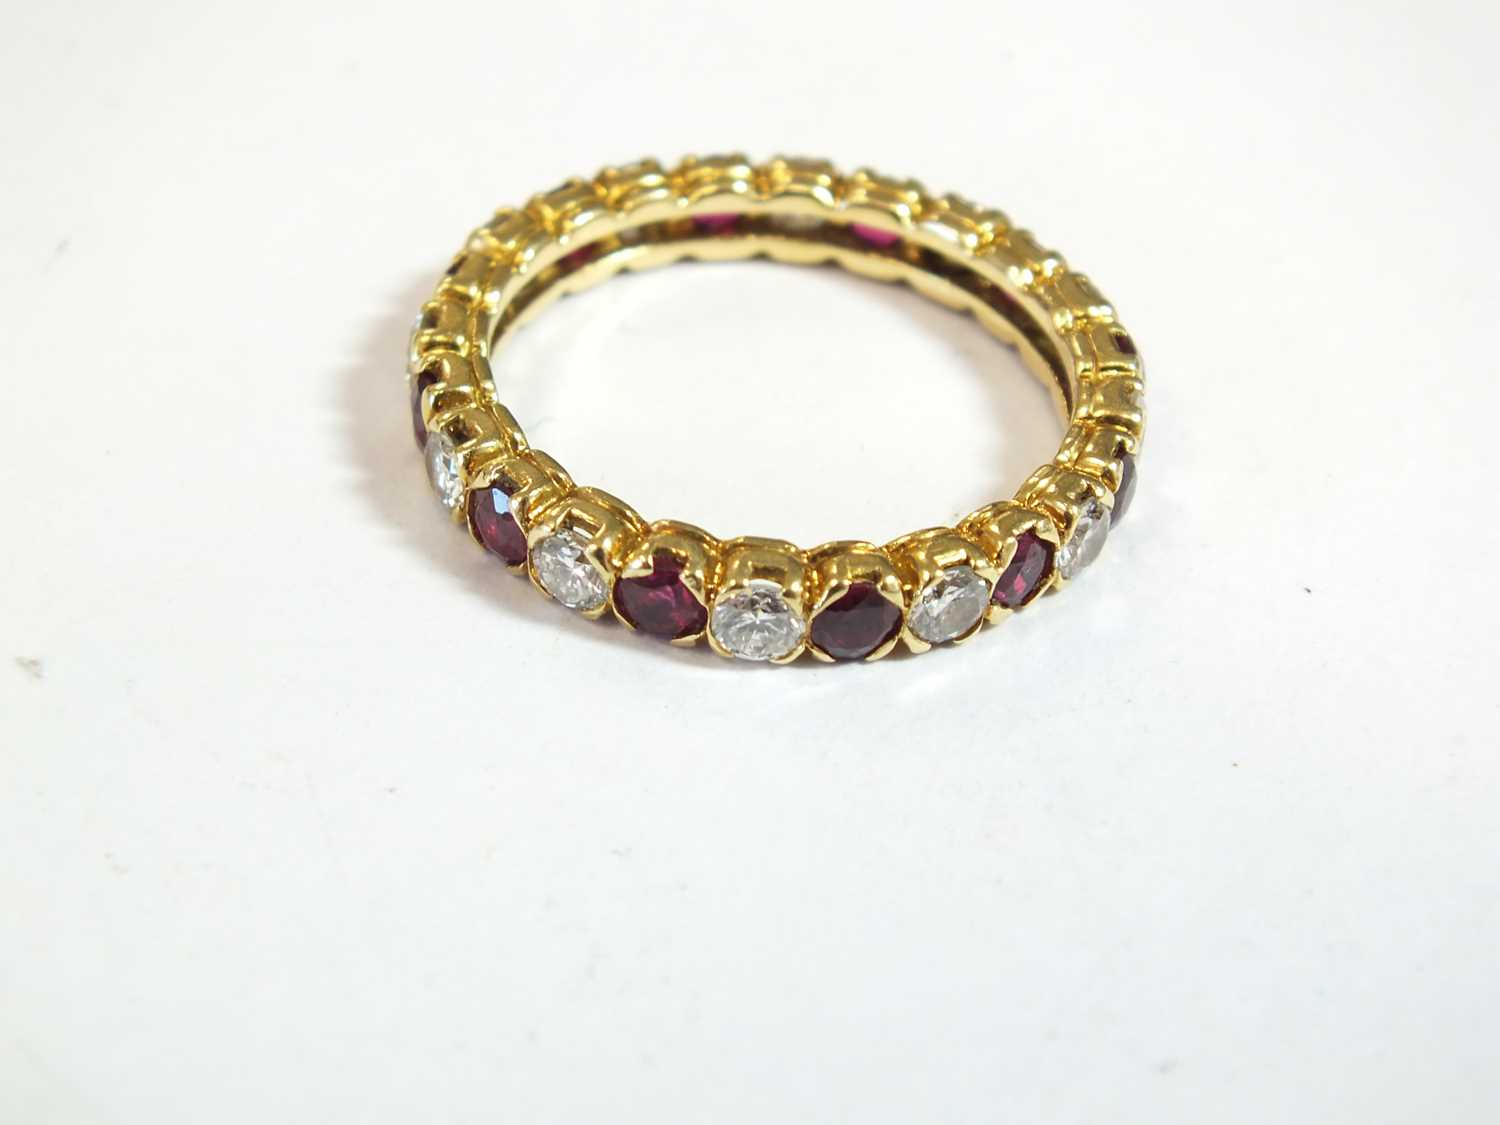 An 18ct gold ruby and diamond full eternity ring by Boucheron - Image 7 of 8